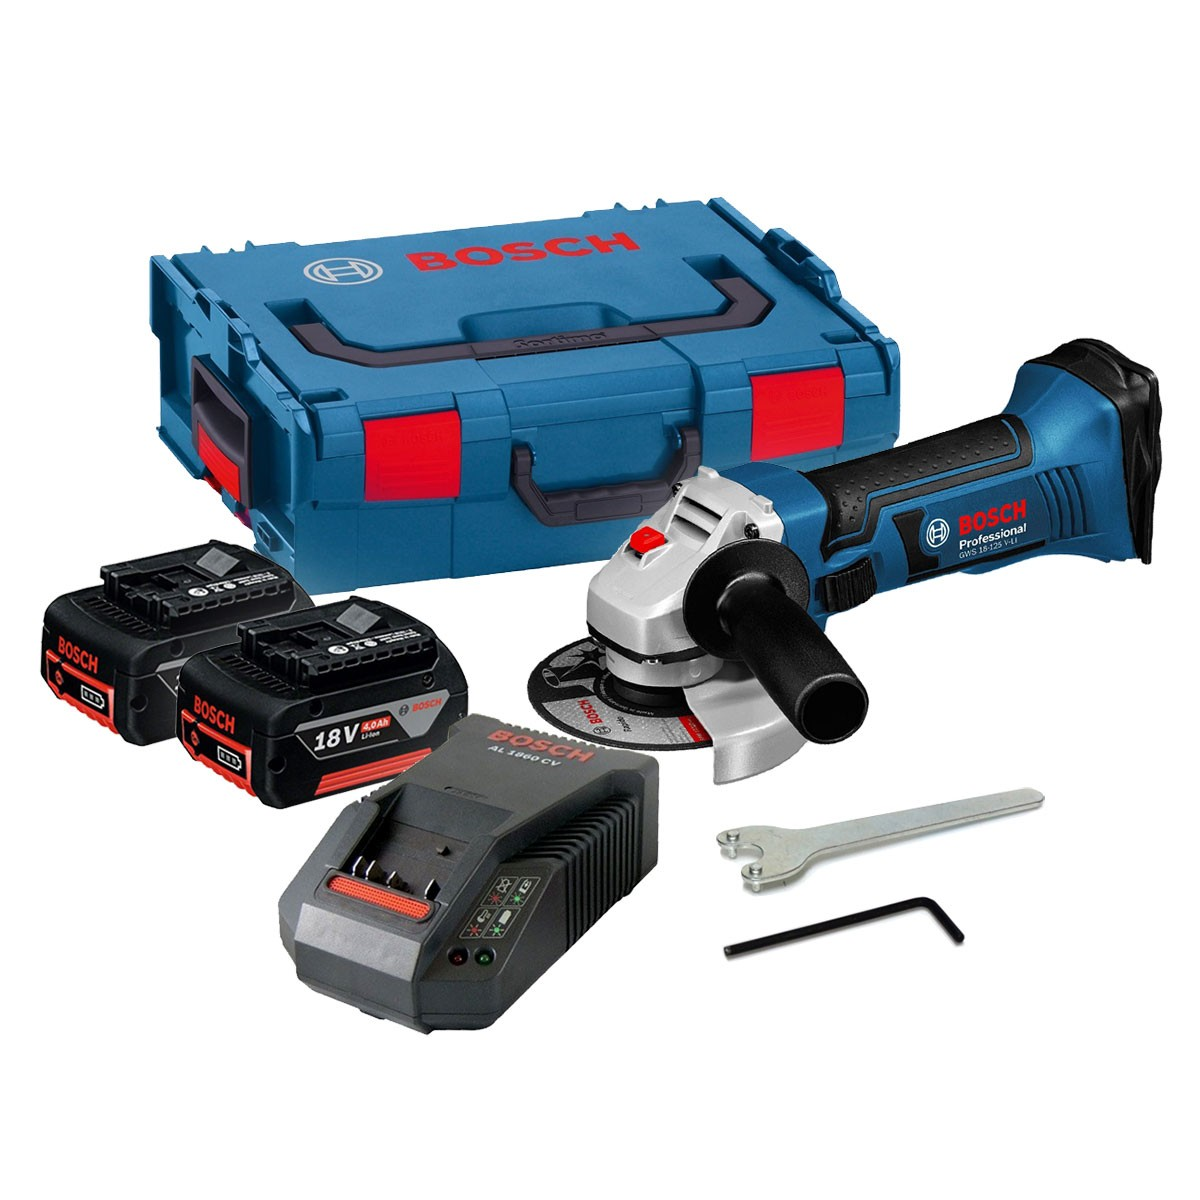 bosch gws 18 125 v li angle grinder inc 2x 4ah batt powertool world. Black Bedroom Furniture Sets. Home Design Ideas